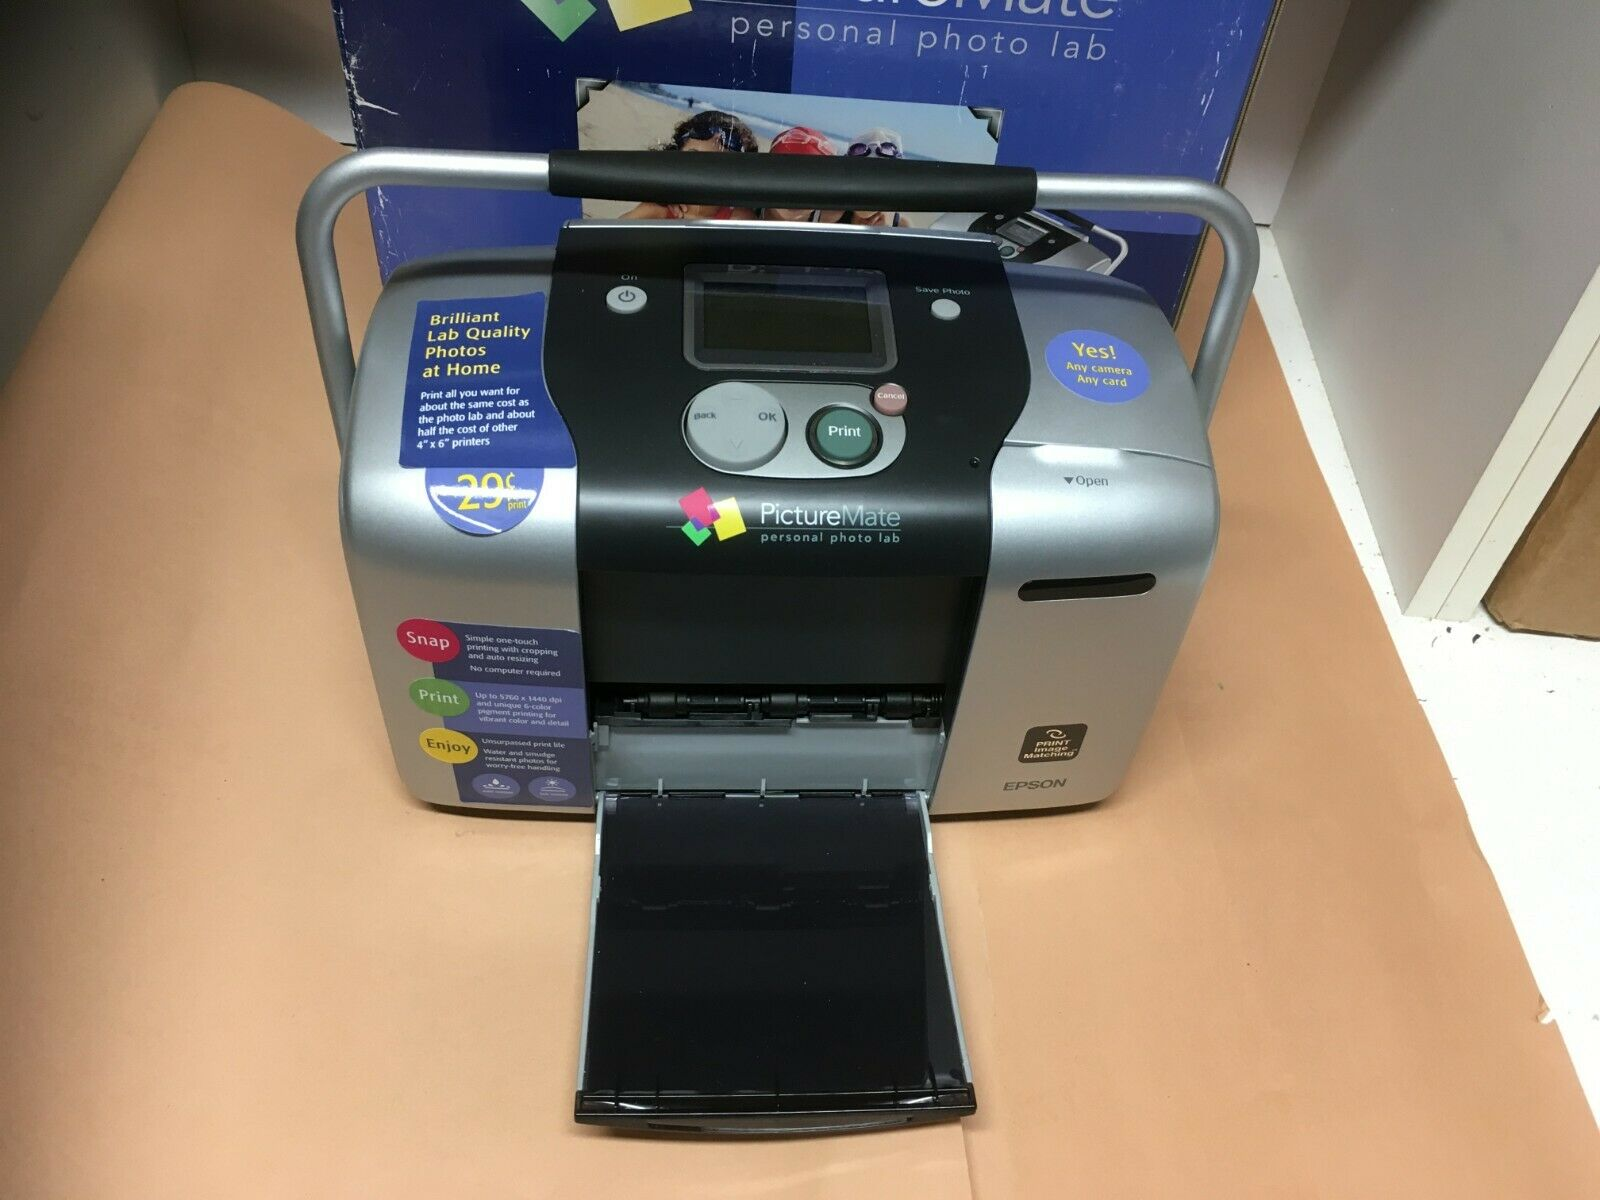 EPSON PICTUREMATE PORTABLE INK JET PRINTER IN BOX, B271 WITH